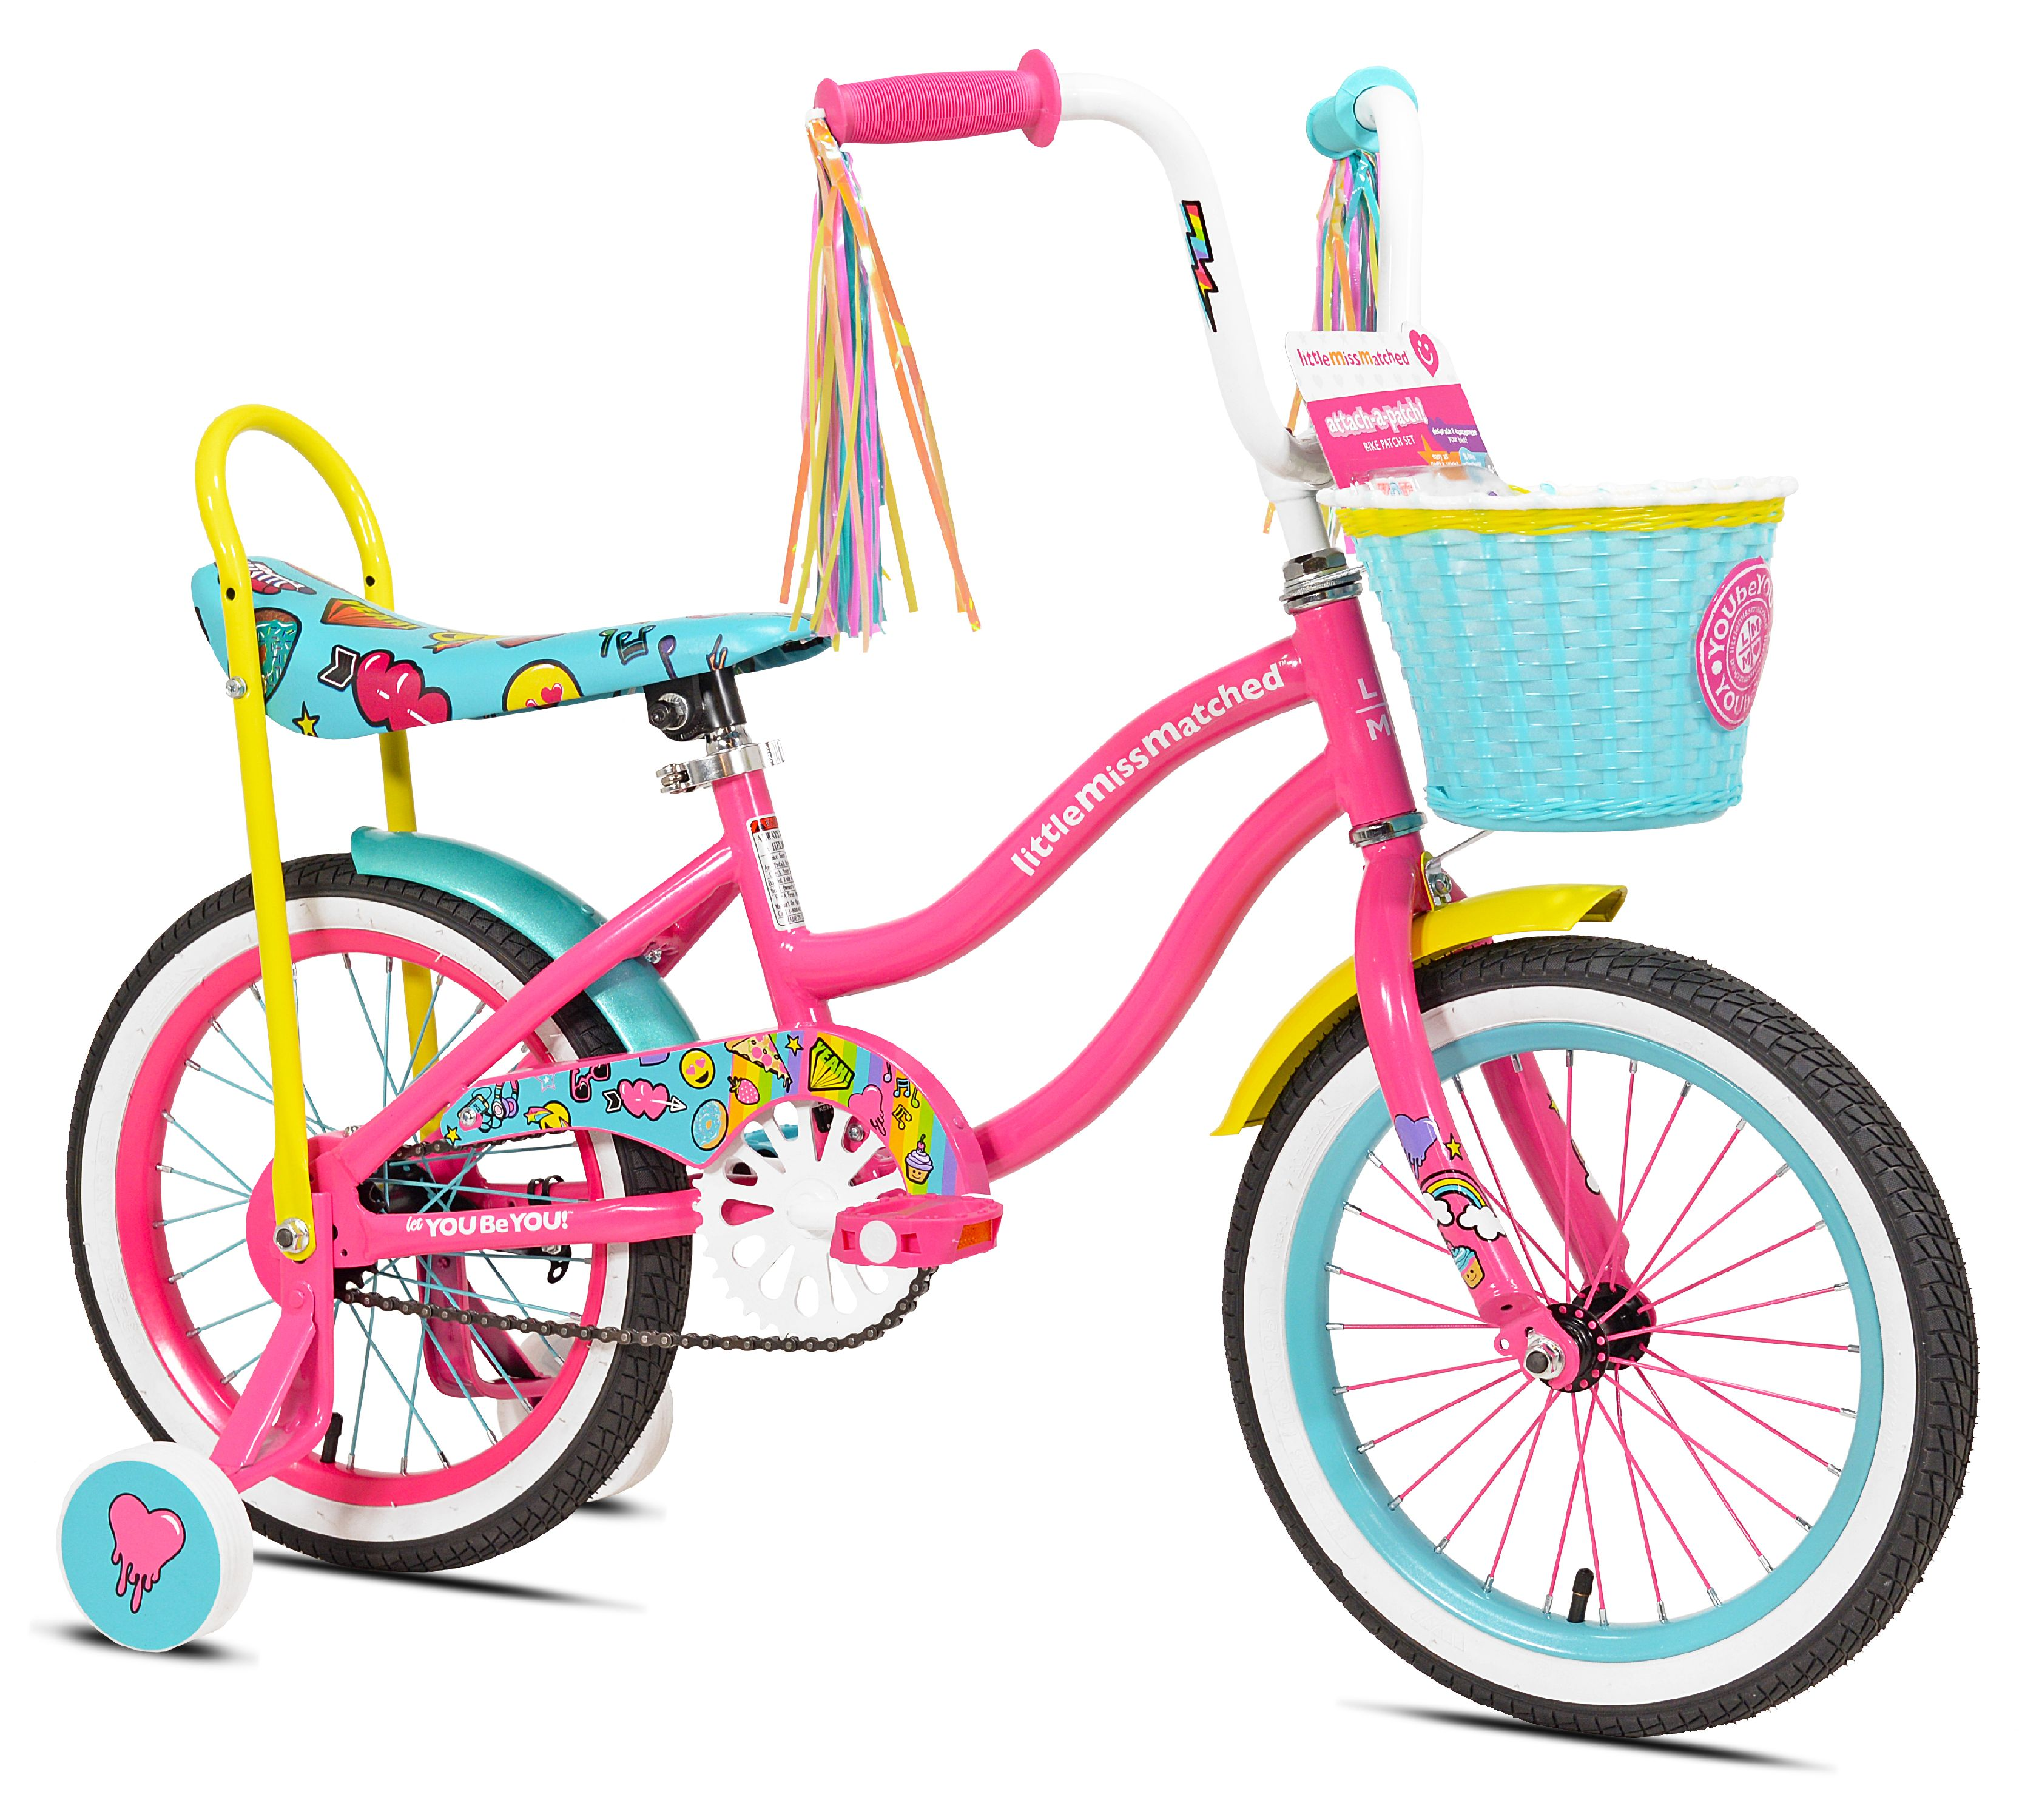 "LittleMissMatched 16"" Girls', Highriser Bike, Pink/Blue, For Ages 6-9"